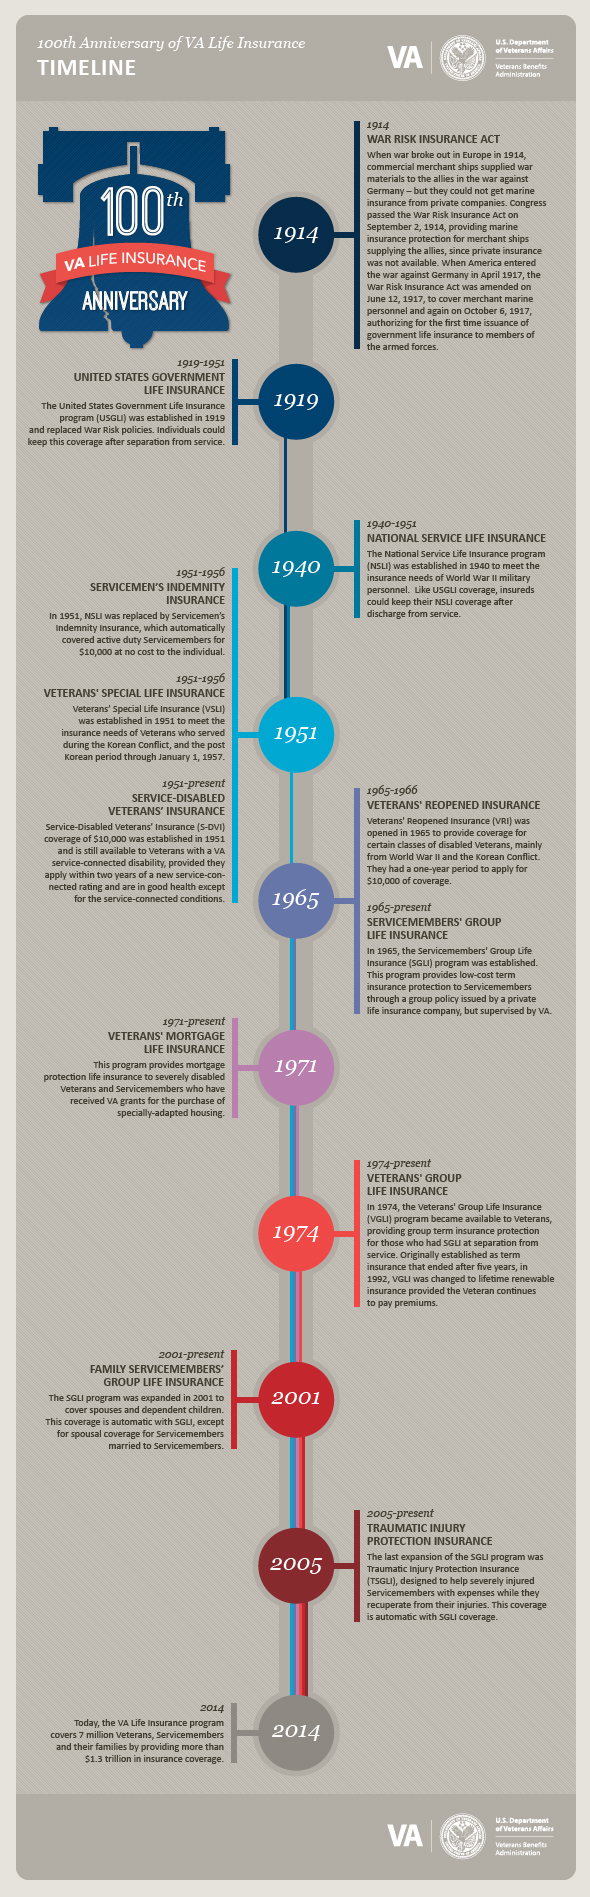 Timeline of 100th Anniversary of VA Life Insurance